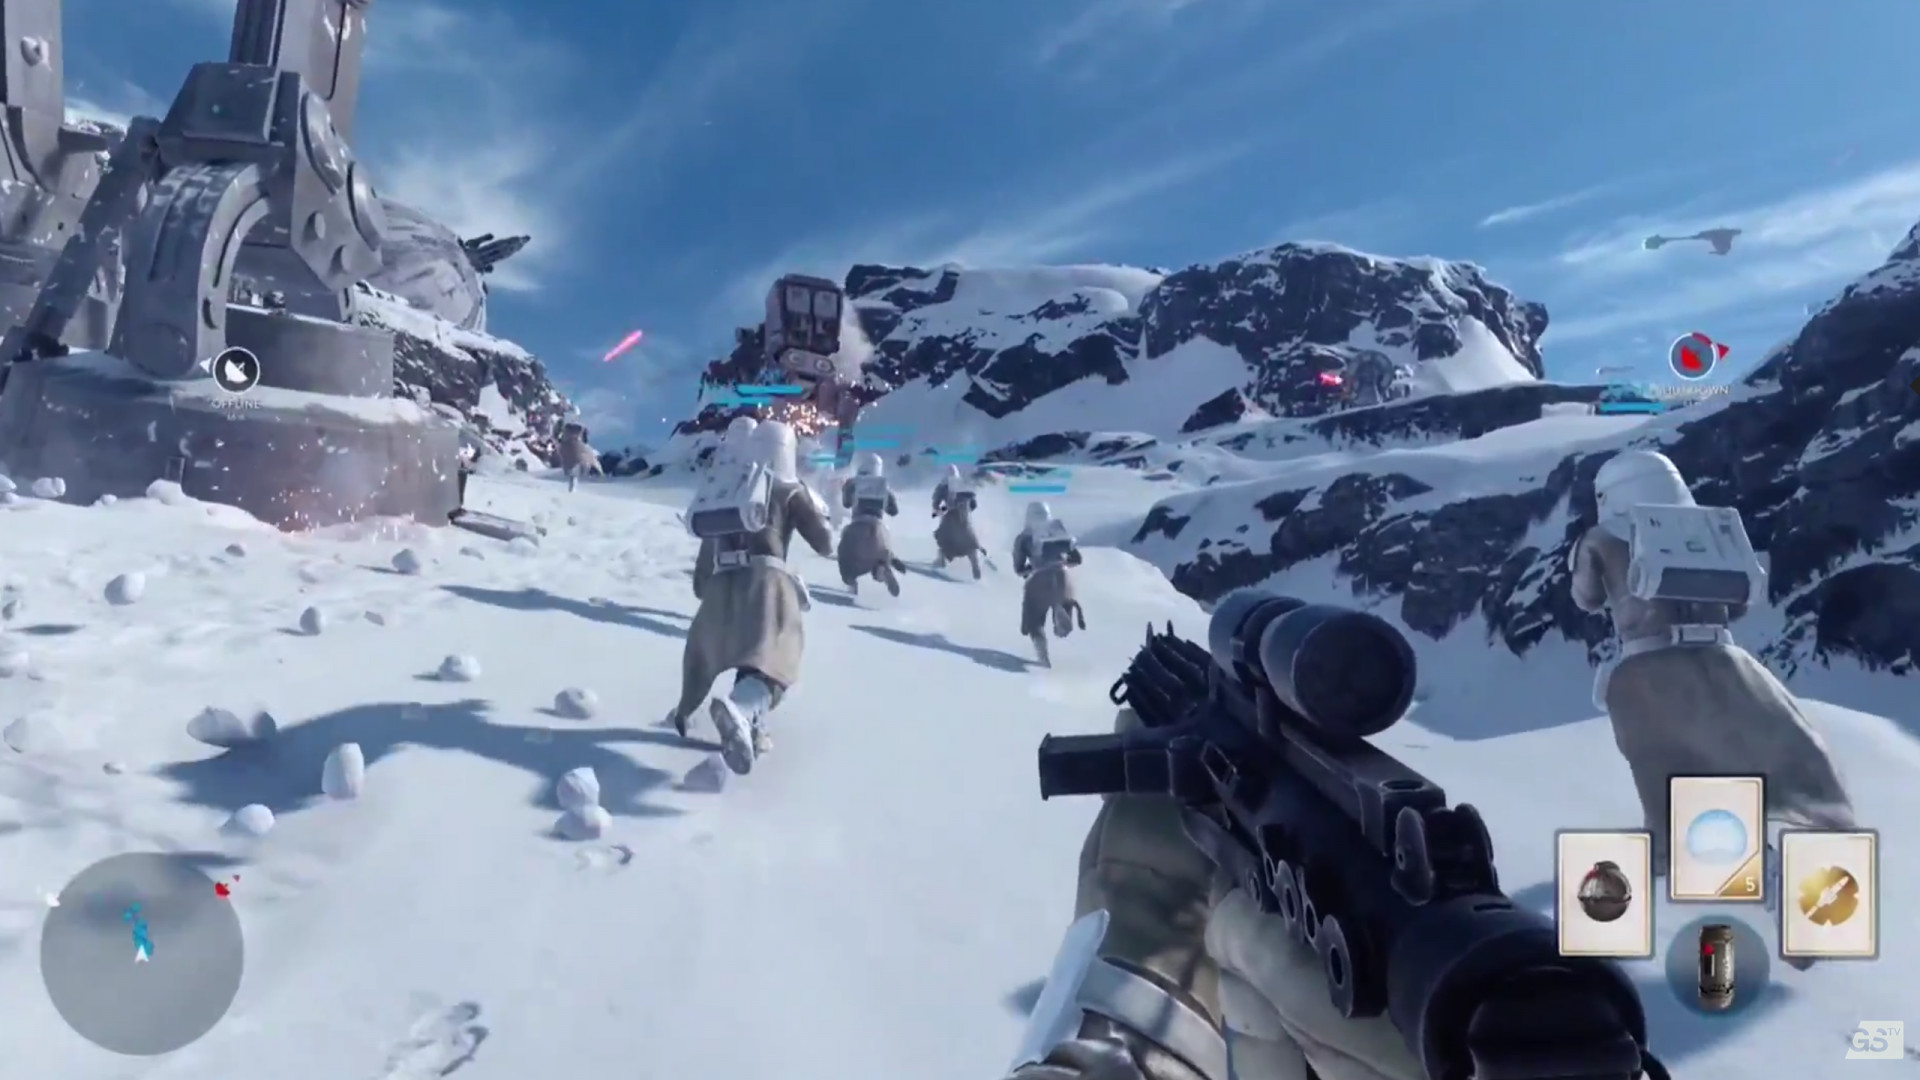 Star Wars Battlefront In Game for 1920 x 1080 HDTV 1080p resolution